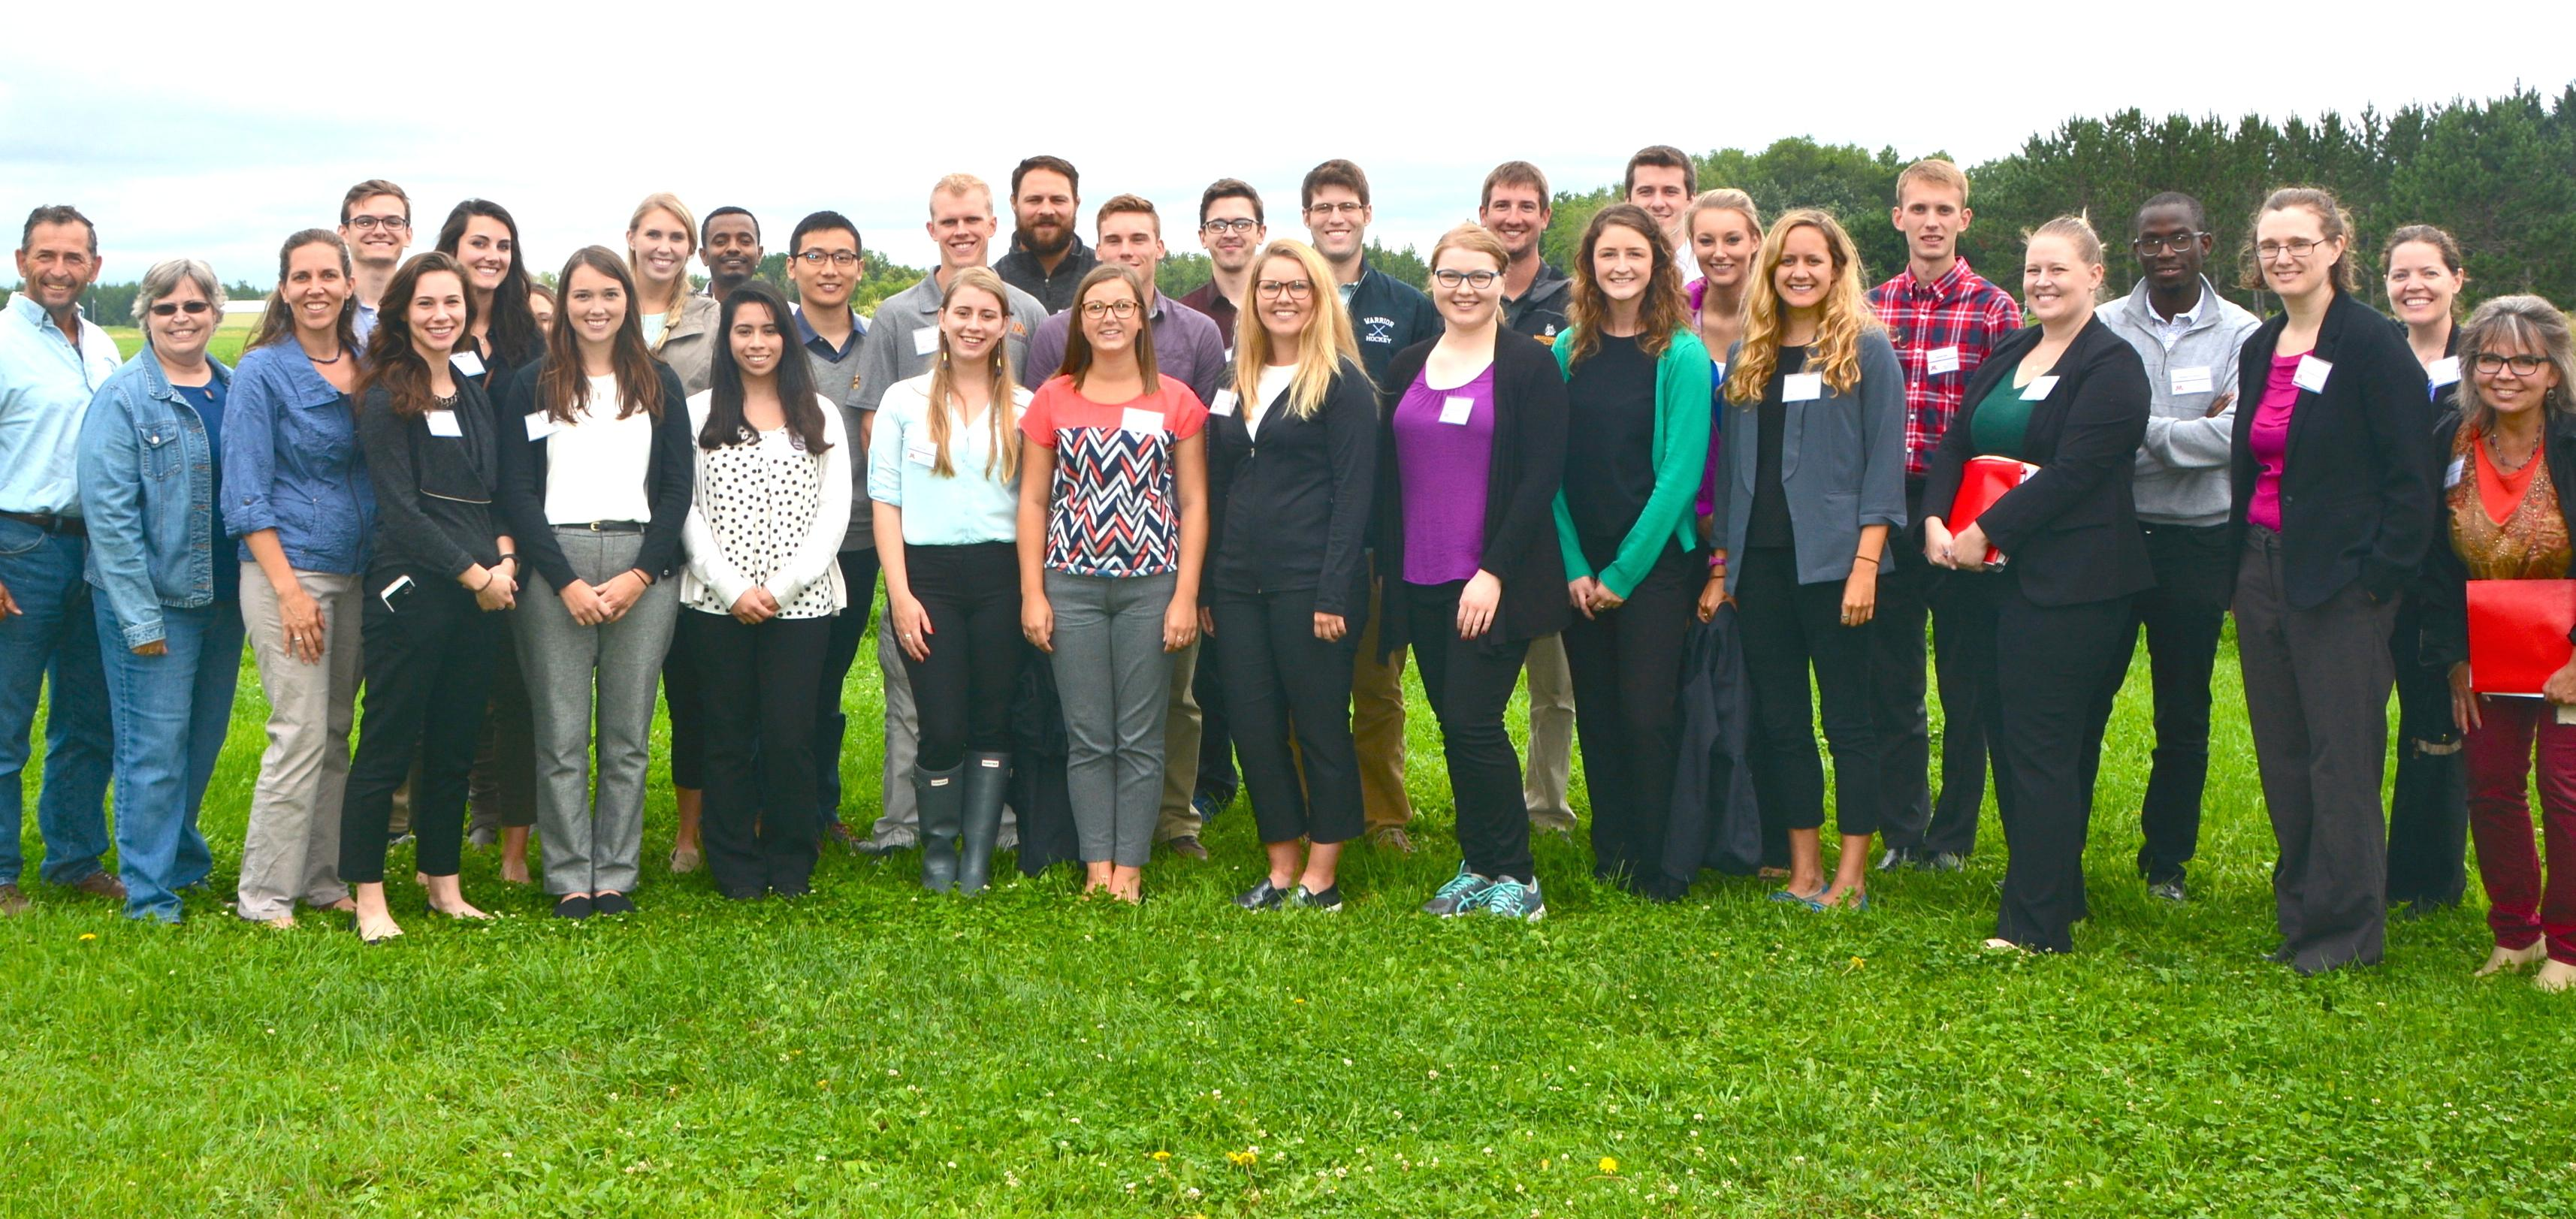 Pharmacy and medical school students traveled to northern Minnesota to learn about caring for rural clients,